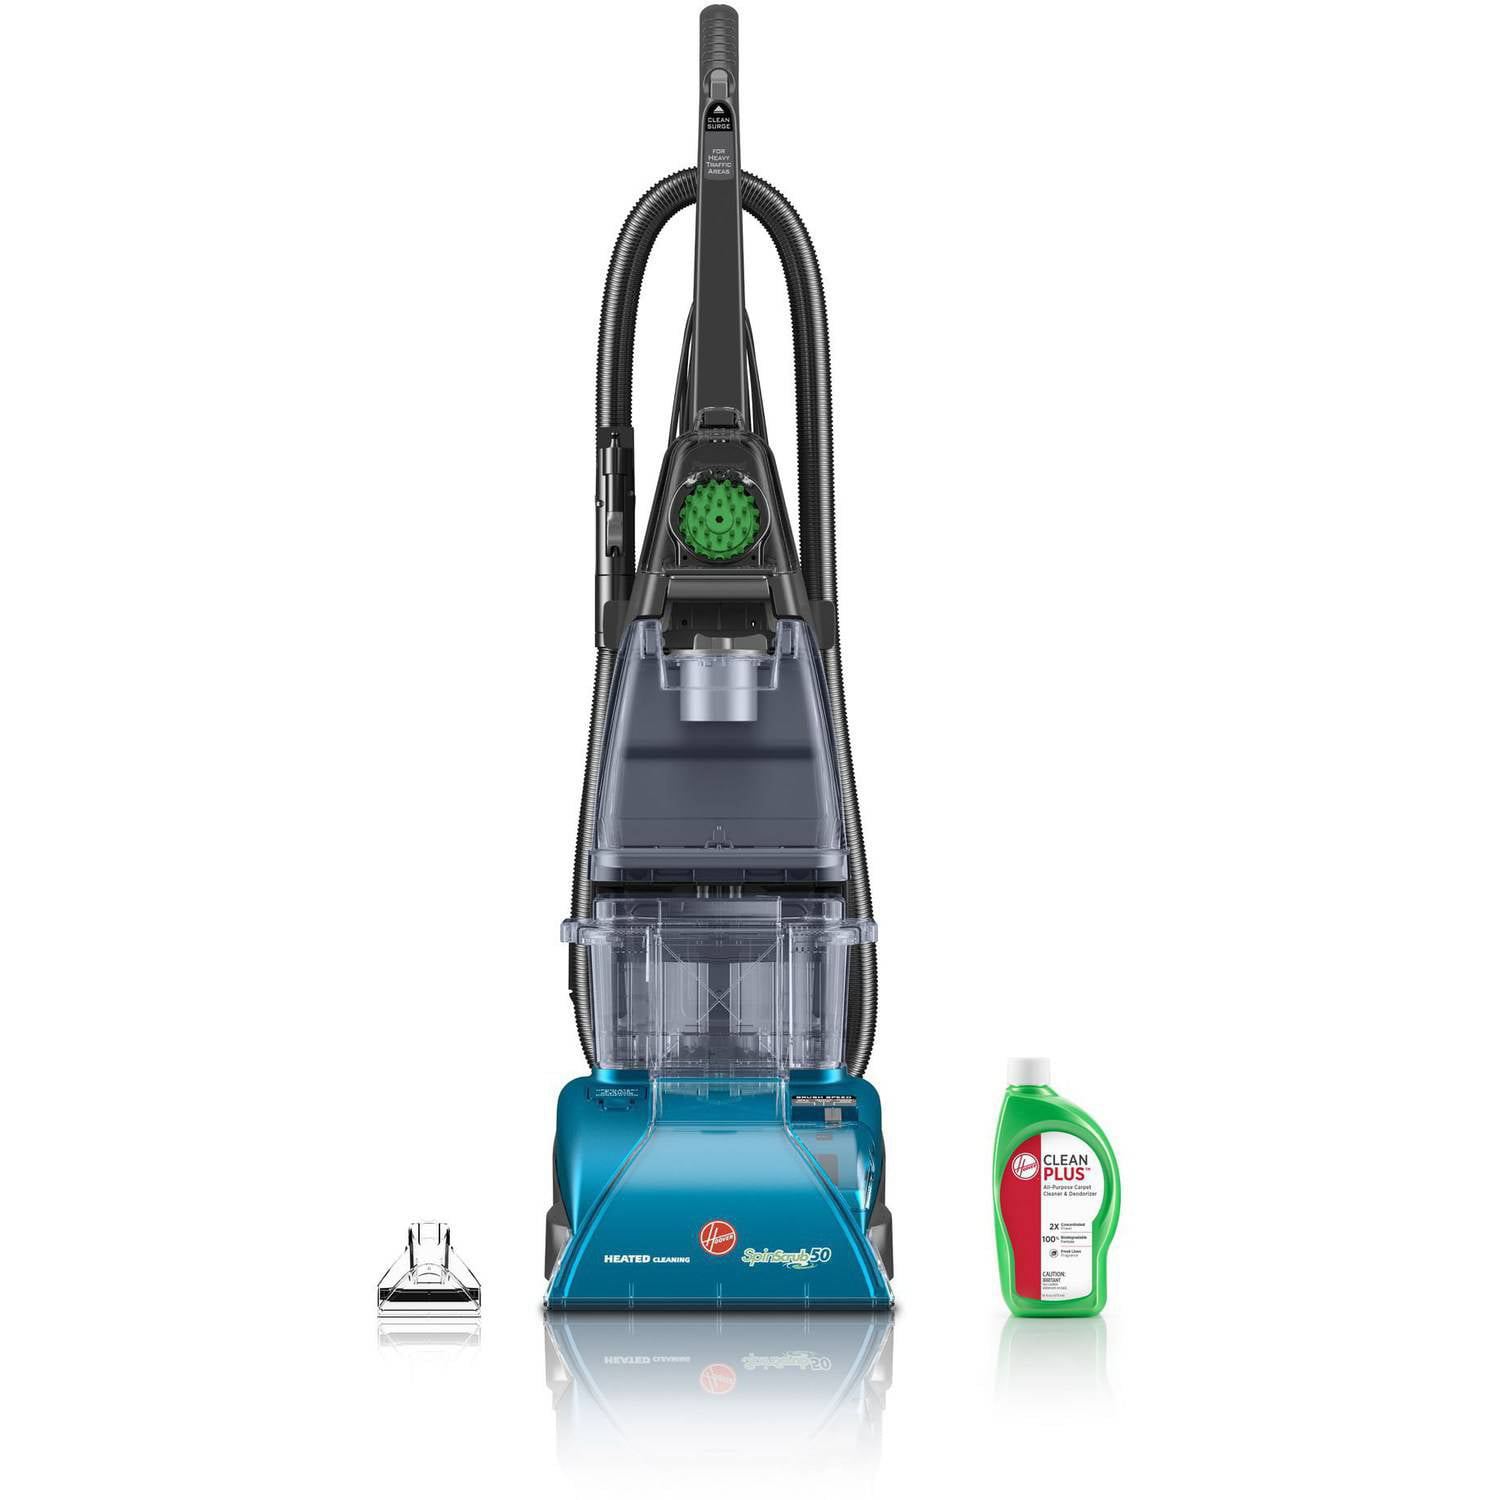 Hoover SteamVac With Clean Surge, F5914900